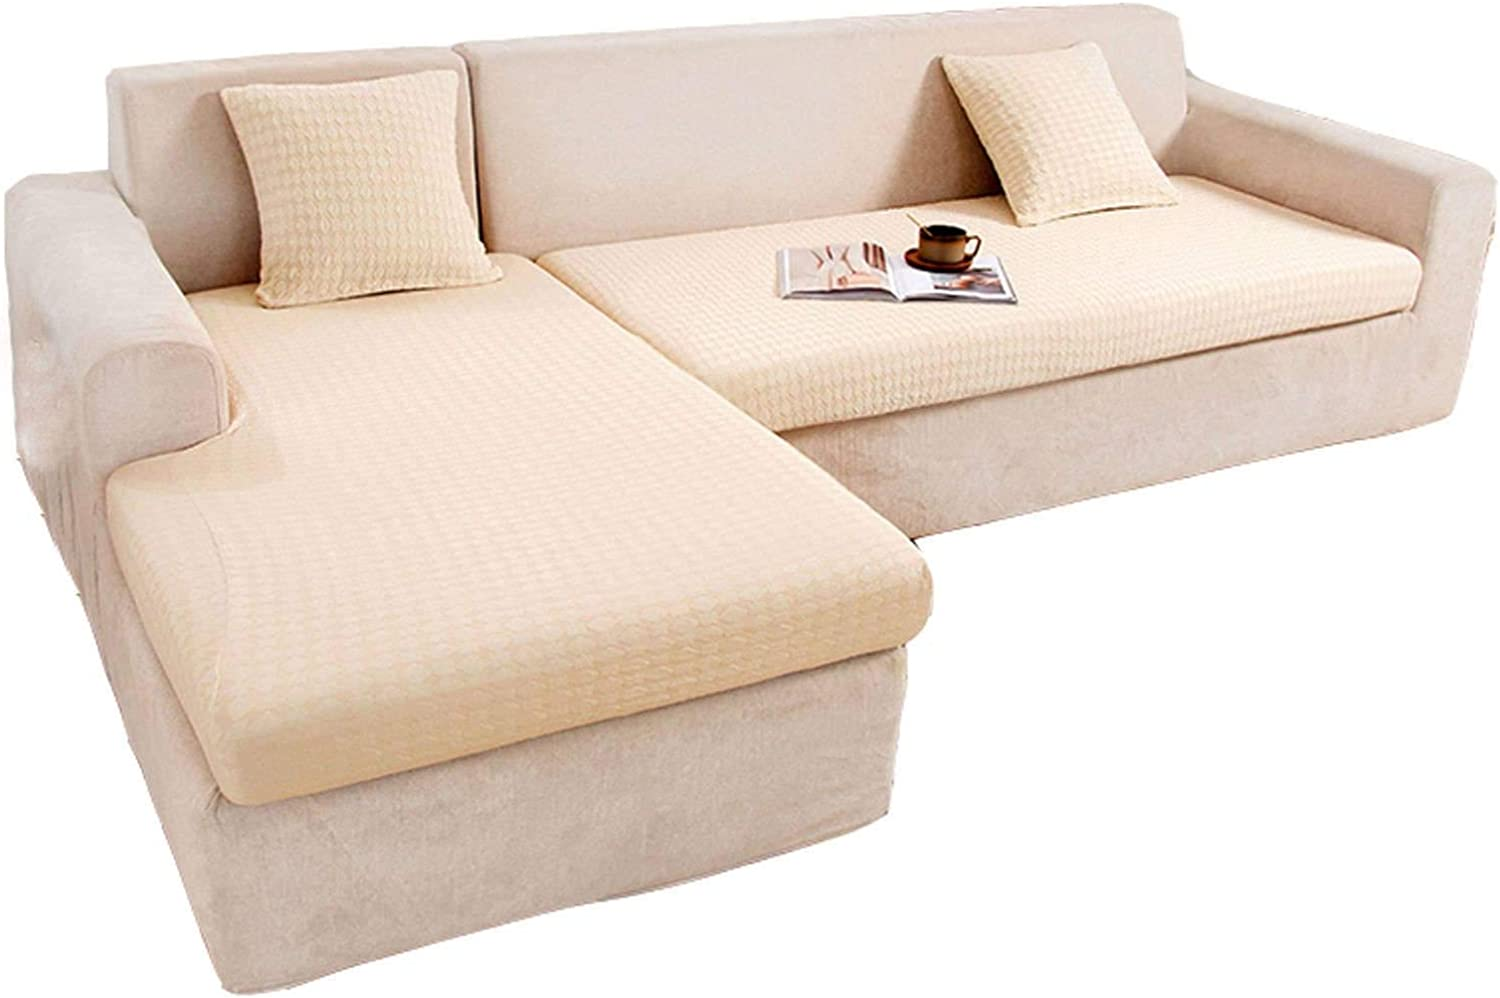 HUOLEO Stretch Couch Cushion Cover 値下げ Seat L 期間限定今なら送料無料 Shaped